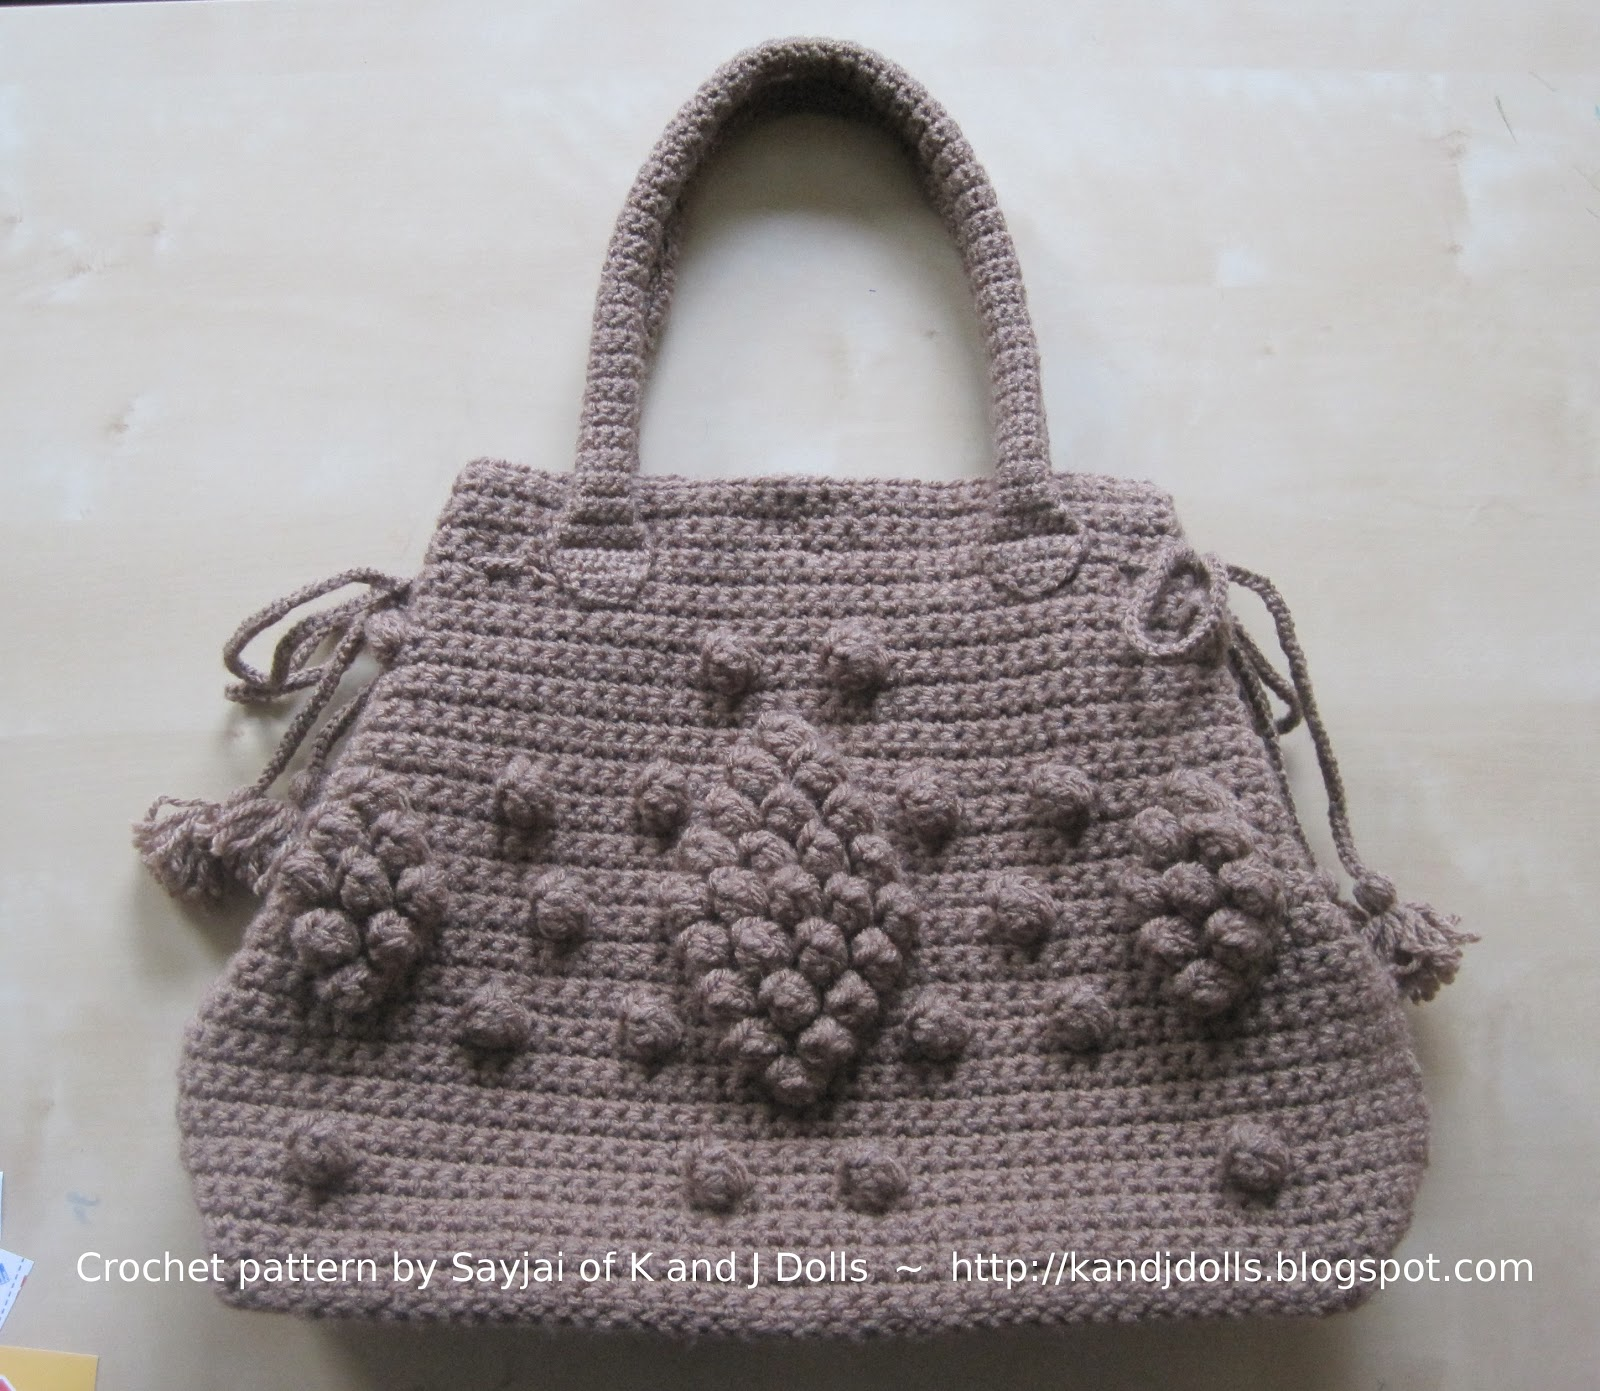 Designer Crochet Handbags : Taupe Bag crochet pattern - Sayjai Amigurumi Crochet Patterns ~ K and ...